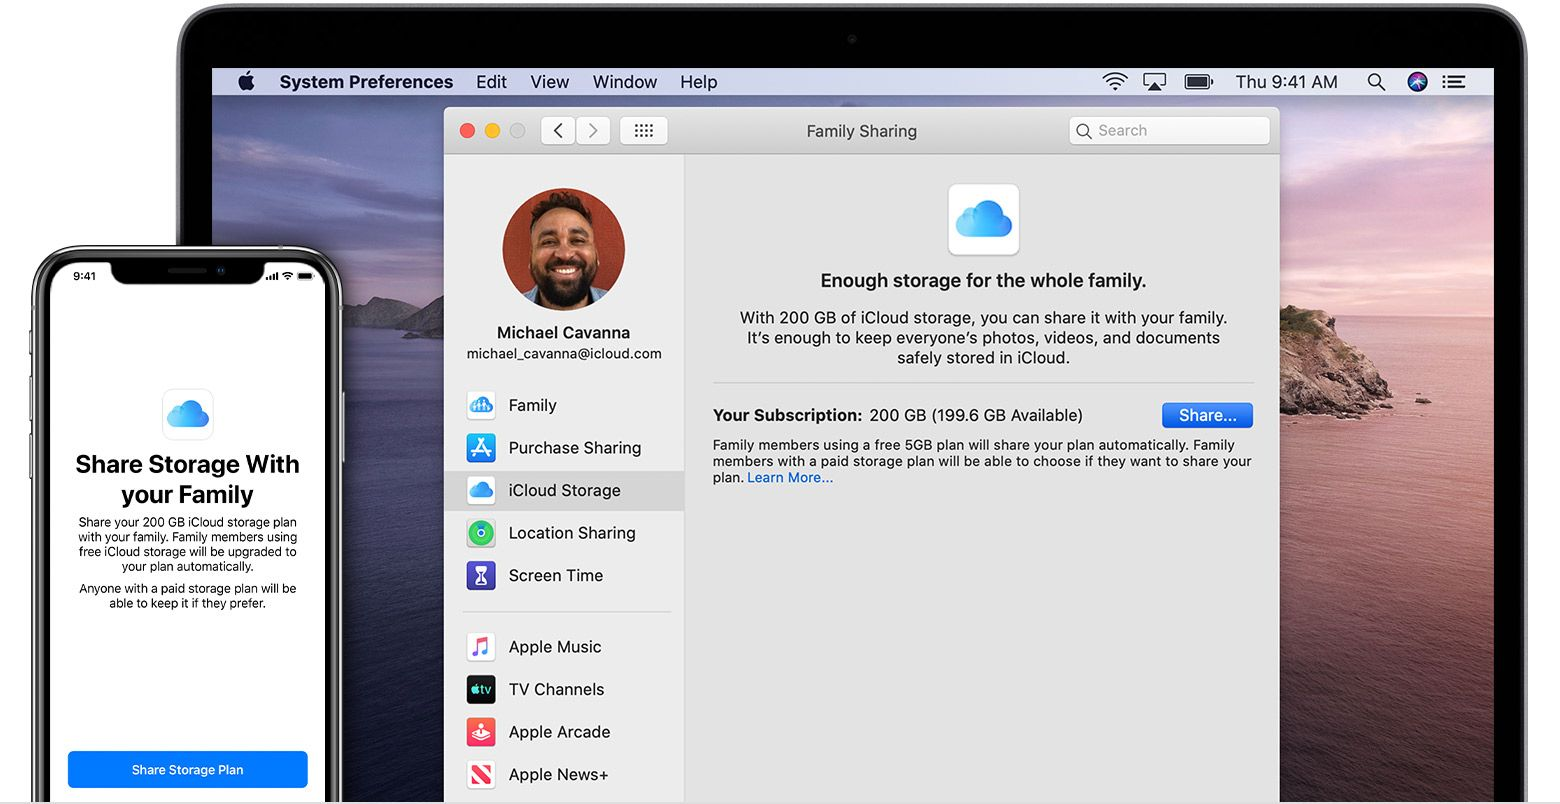 The flexibility of iCloud Family Storage Sharing